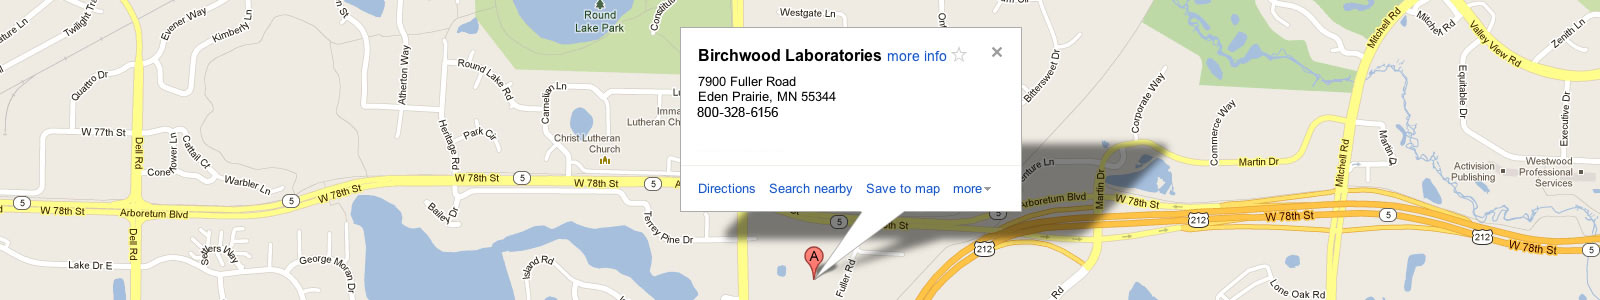 Google Map of Birchwood Location